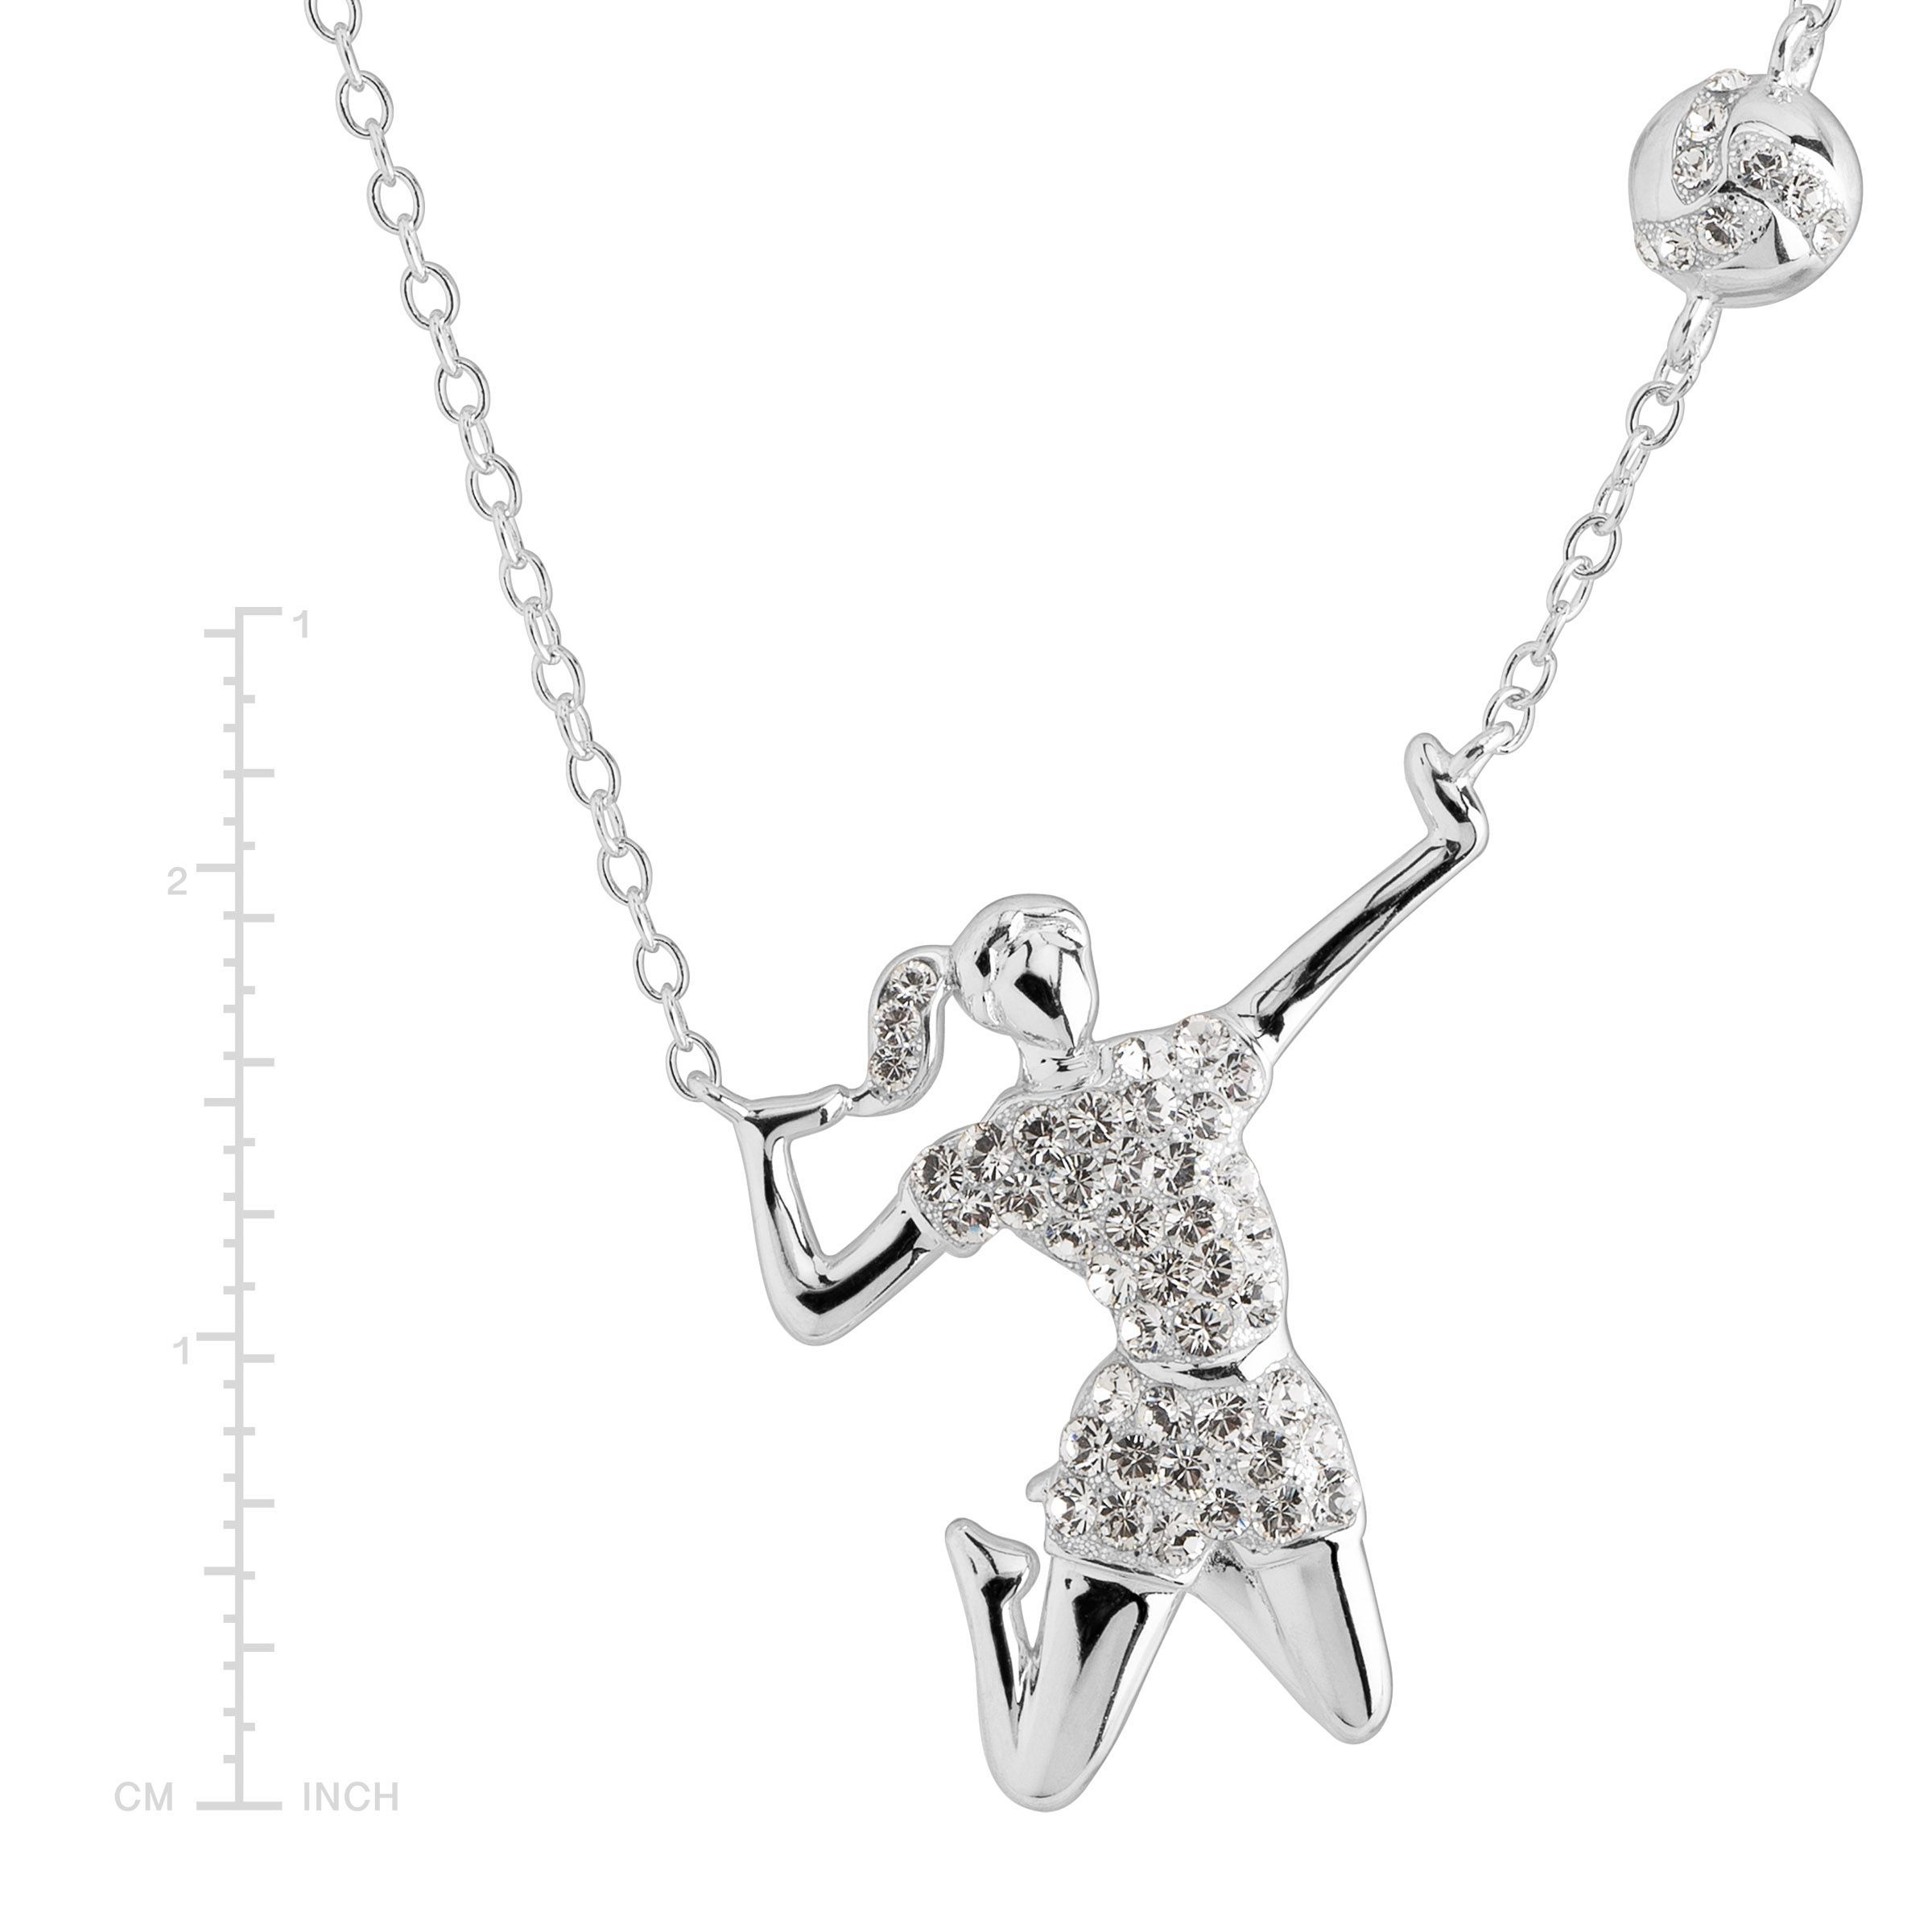 344ff43cf89ed Details about Crystaluxe Volleyball Player Necklace with Swarovski Crystals  in Sterling Silver